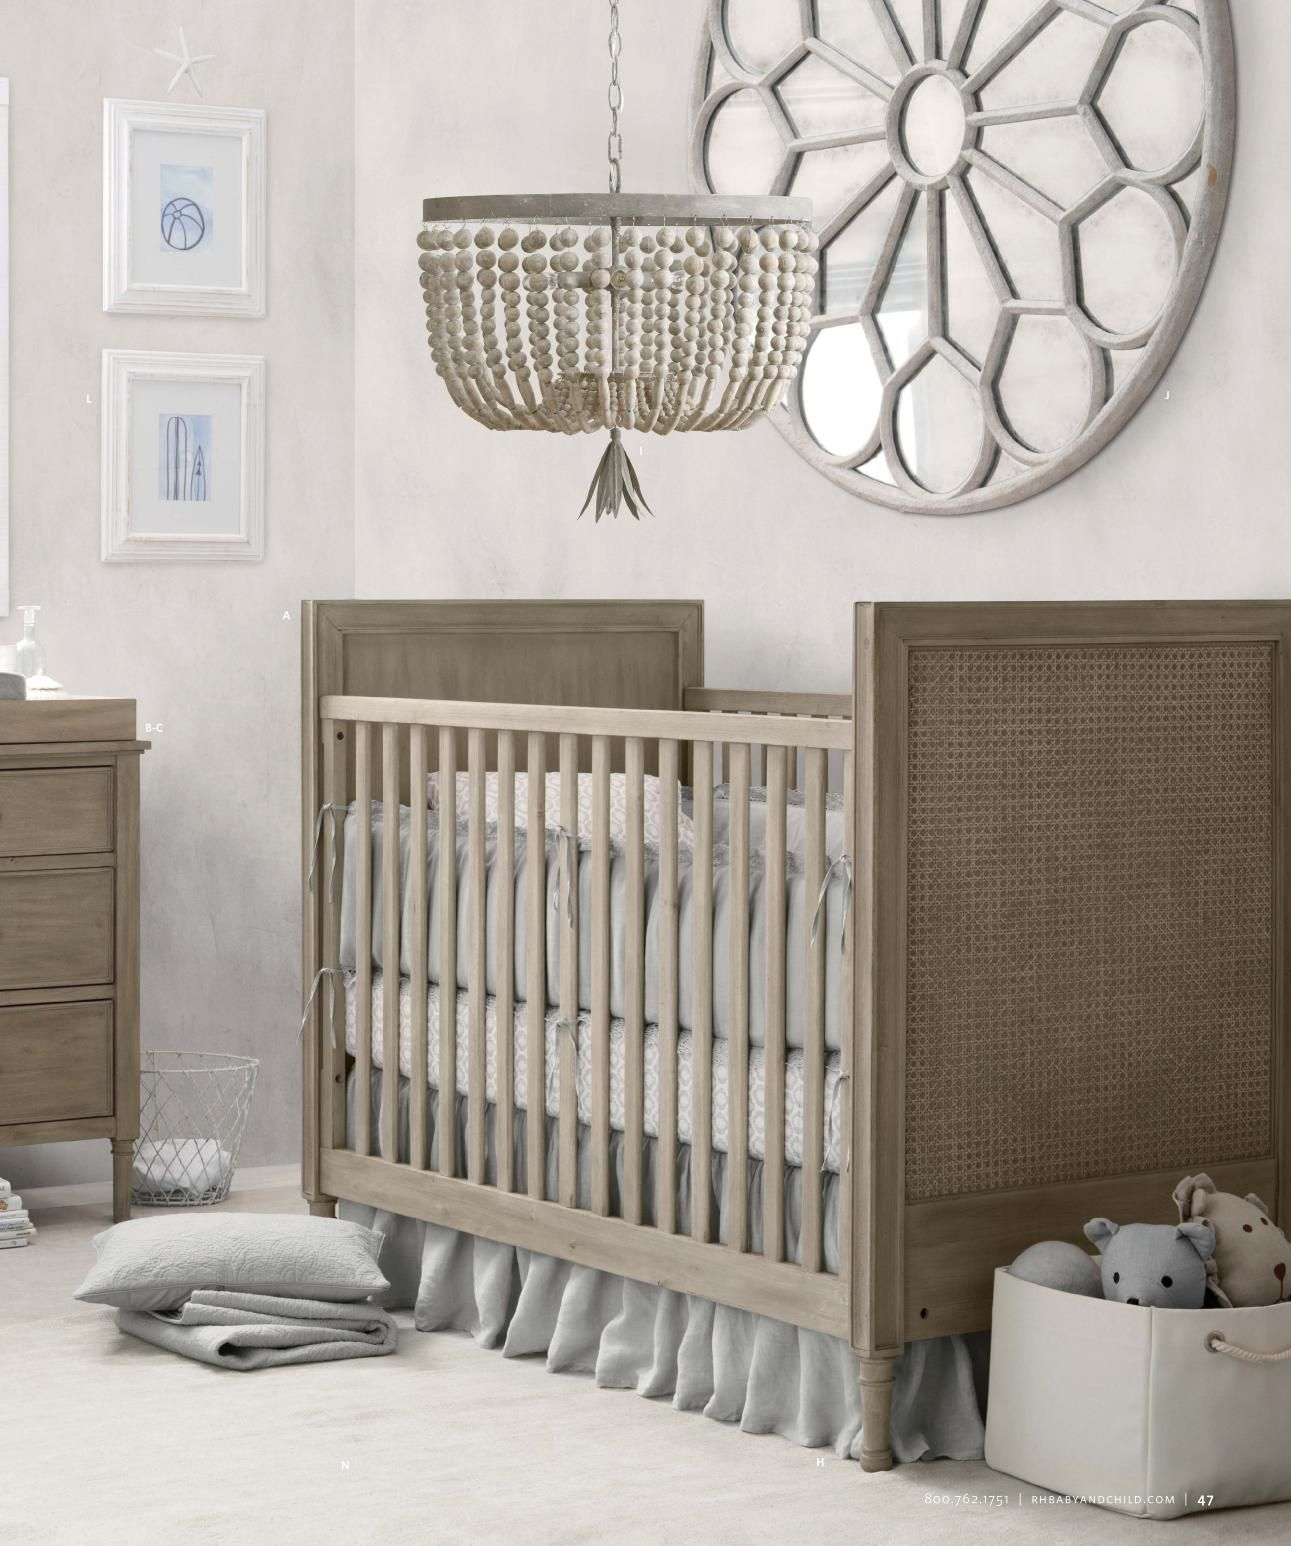 Muebles Guarderia 2014 Spring Catalog Rh Baby And Child Lou Lou Nursery